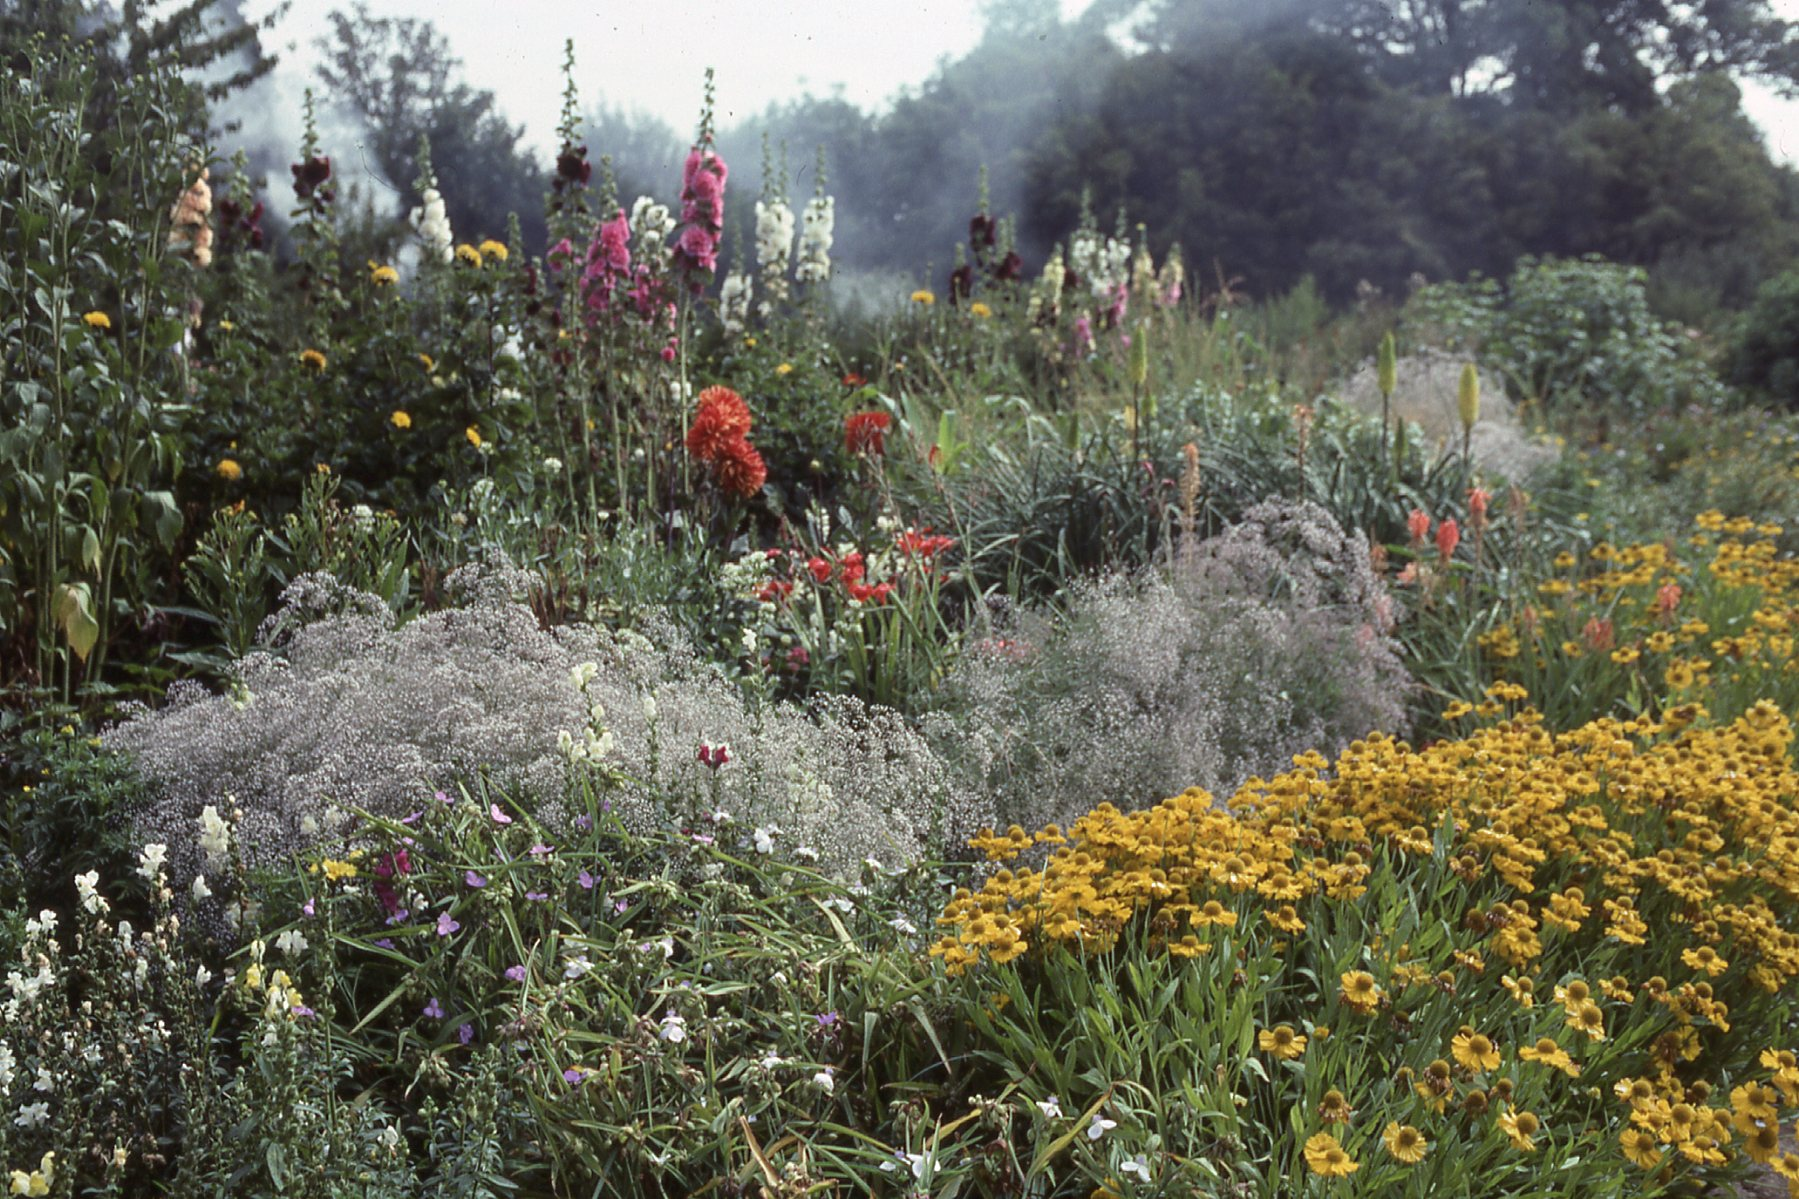 In a small private garden in Hampshire, Gertrude Jekyll created a wildflower border that embraces the theory of naturalism in Arts & Crafts garden design.